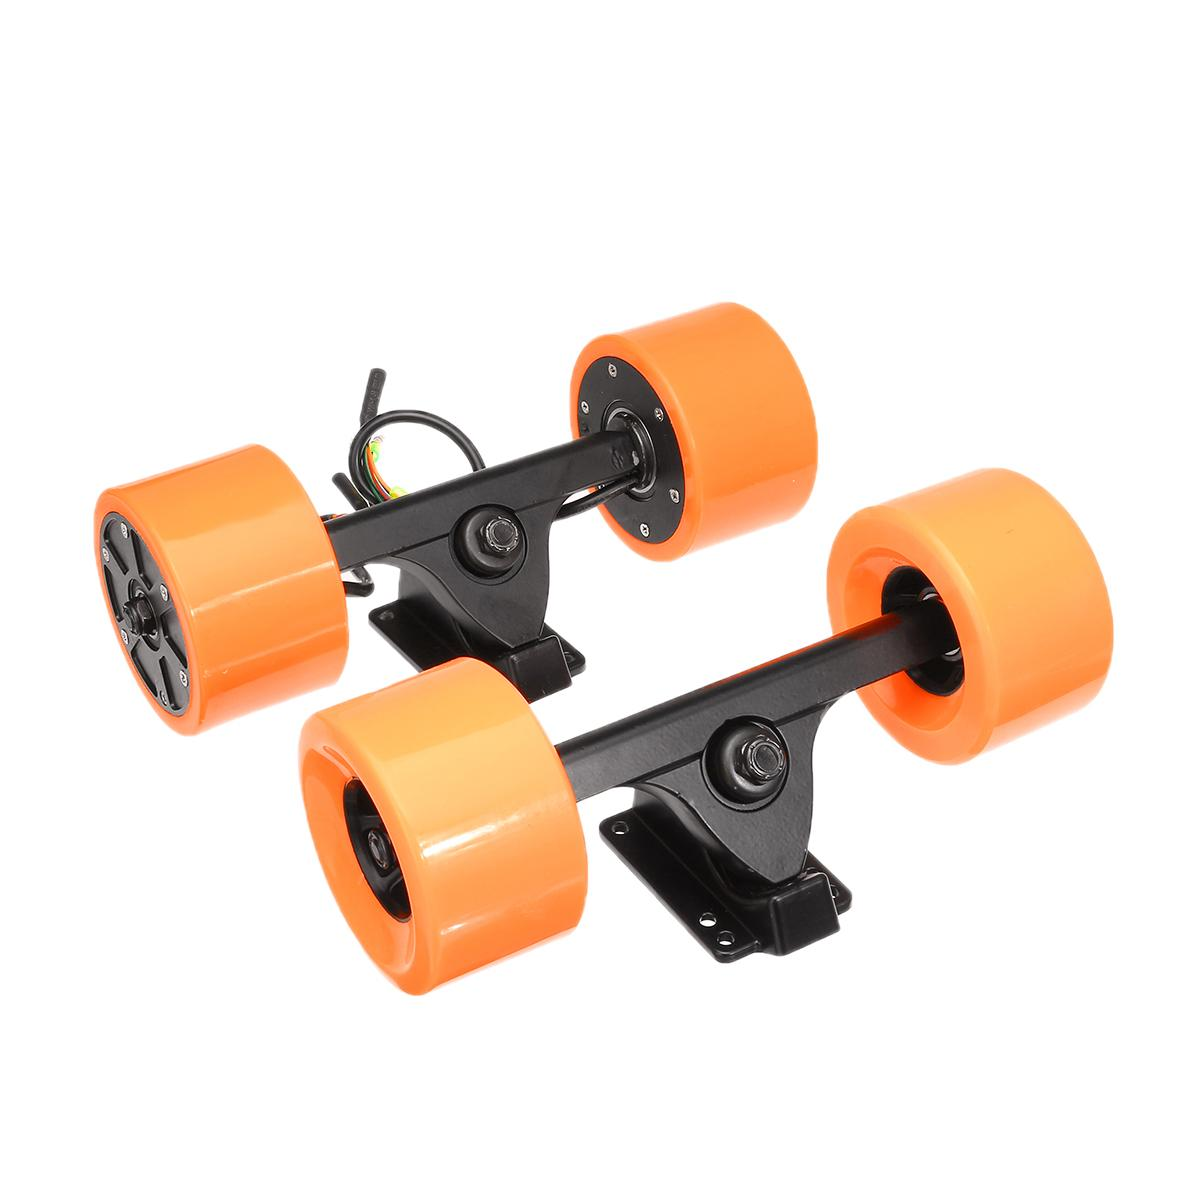 Efficient 600W 90mm Dual Drive Electrical Skateboard Motor Wireless Sensor Remote Controller Drive Hub Motor Truck Kits Scooter